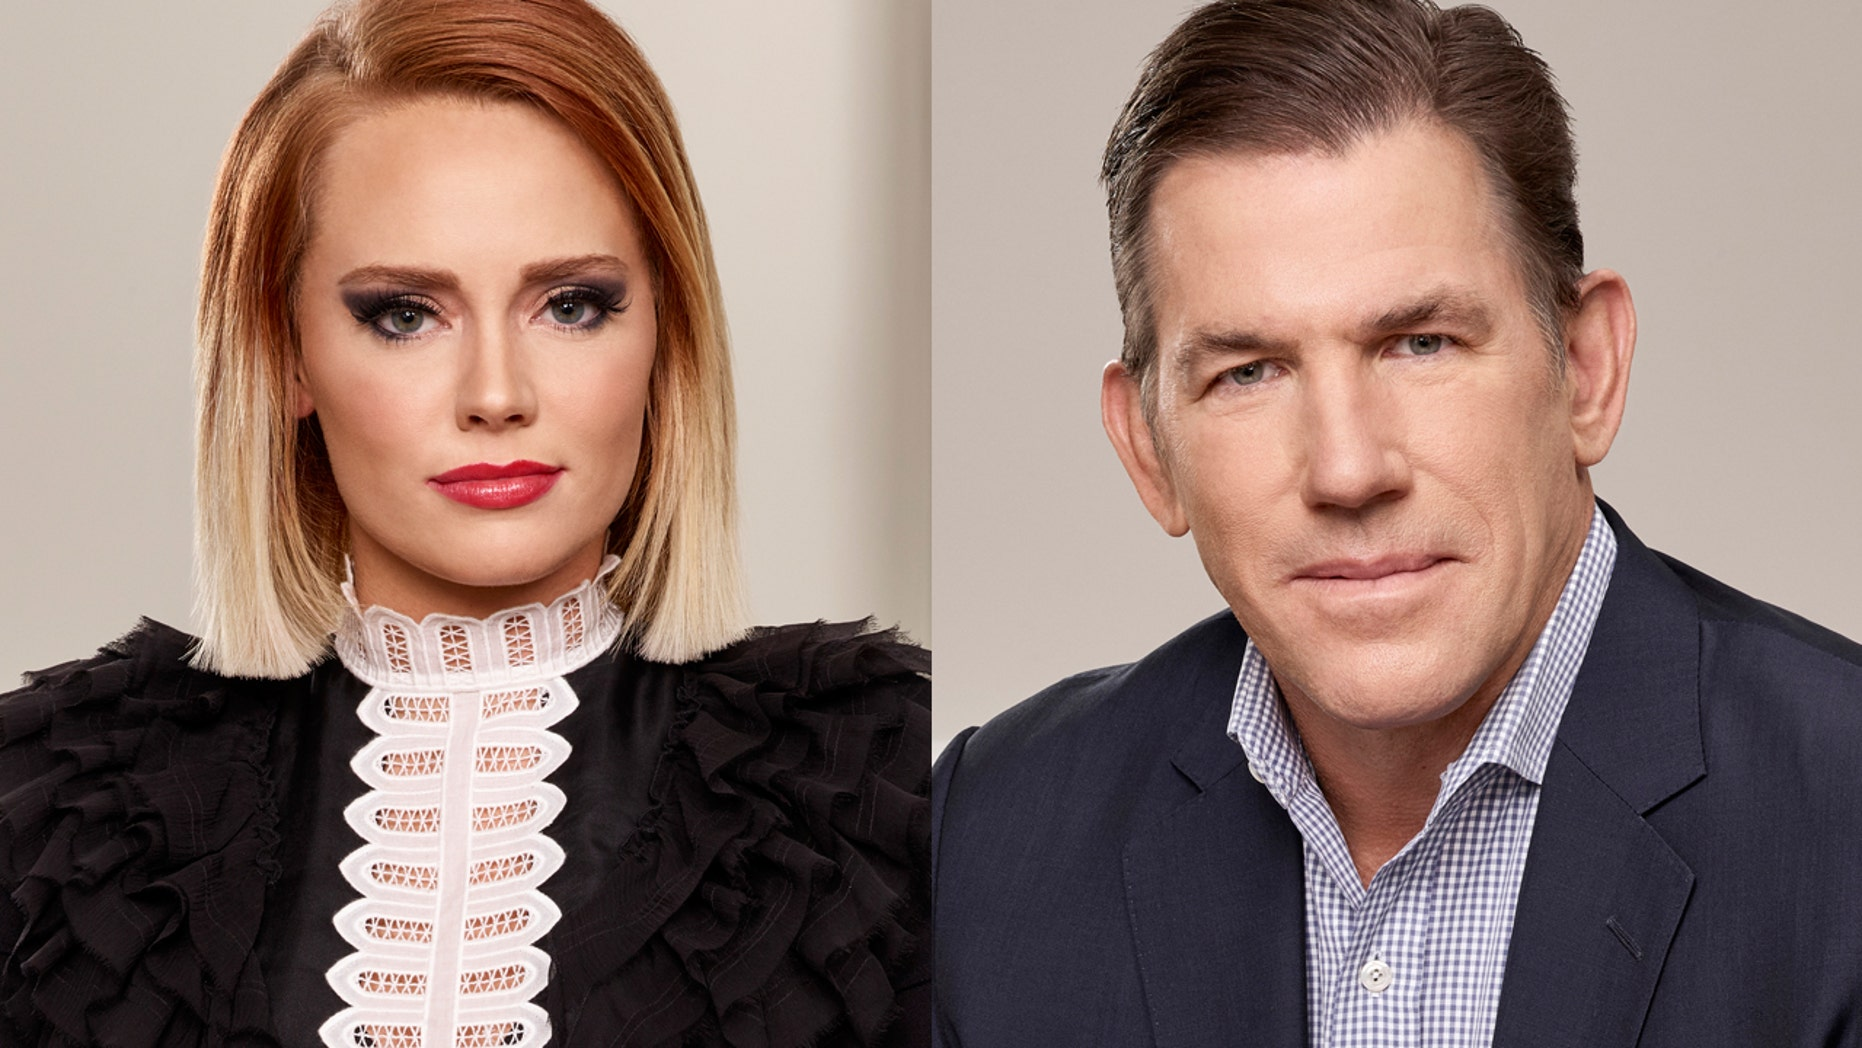 Kathryn Dennis addressed the allegations of sexual assault against her ex Thomas Ravenel.